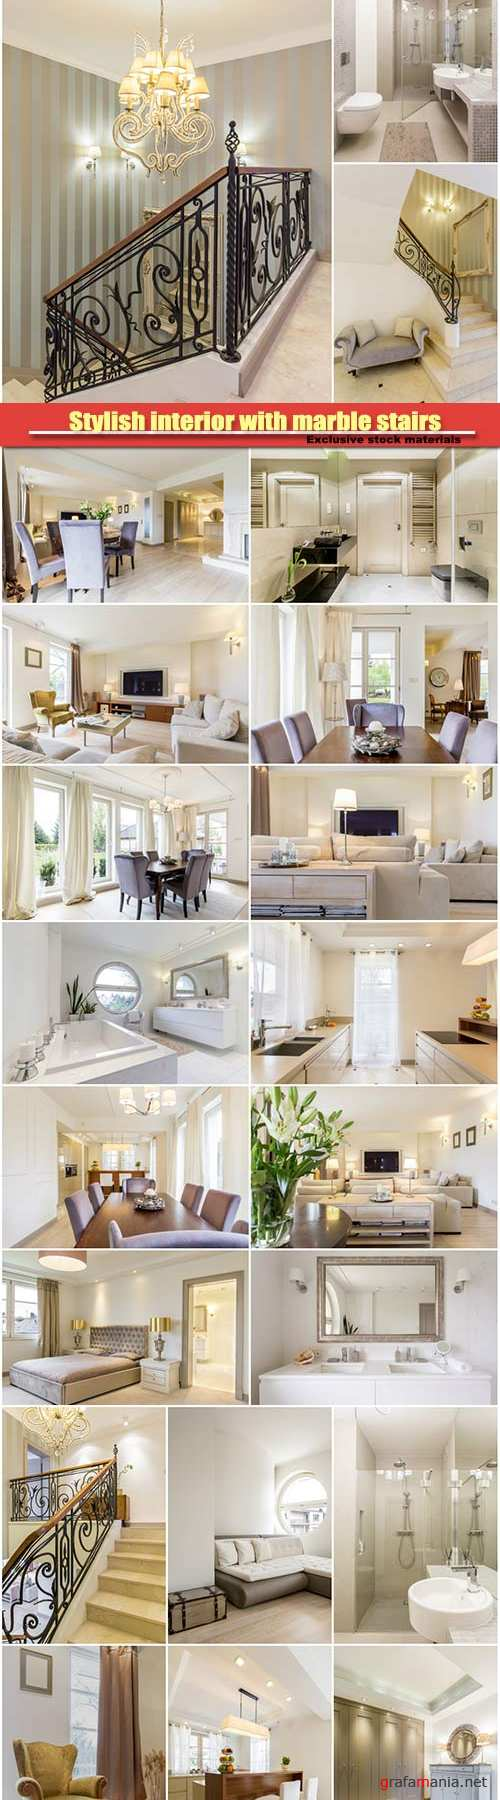 Stylish interior with marble stairs, comfortable living room, bathroom